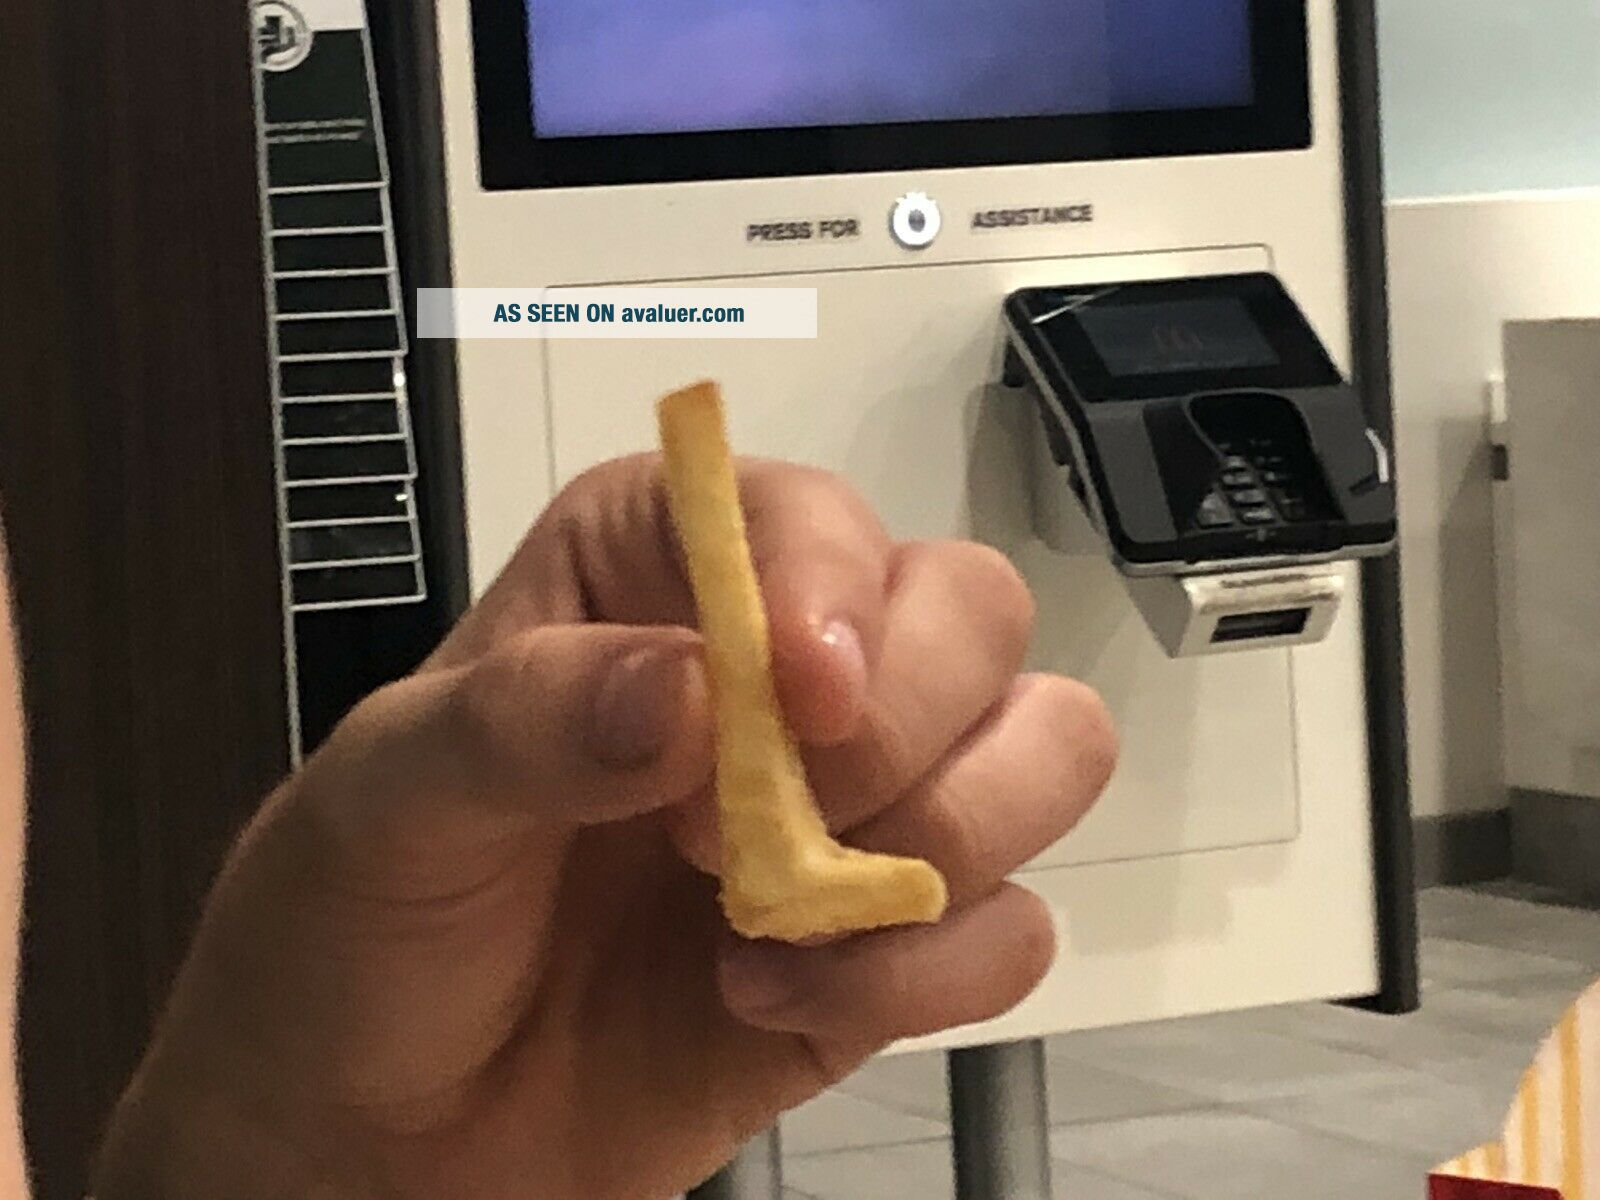 L - Shaped McDonald's French Fry